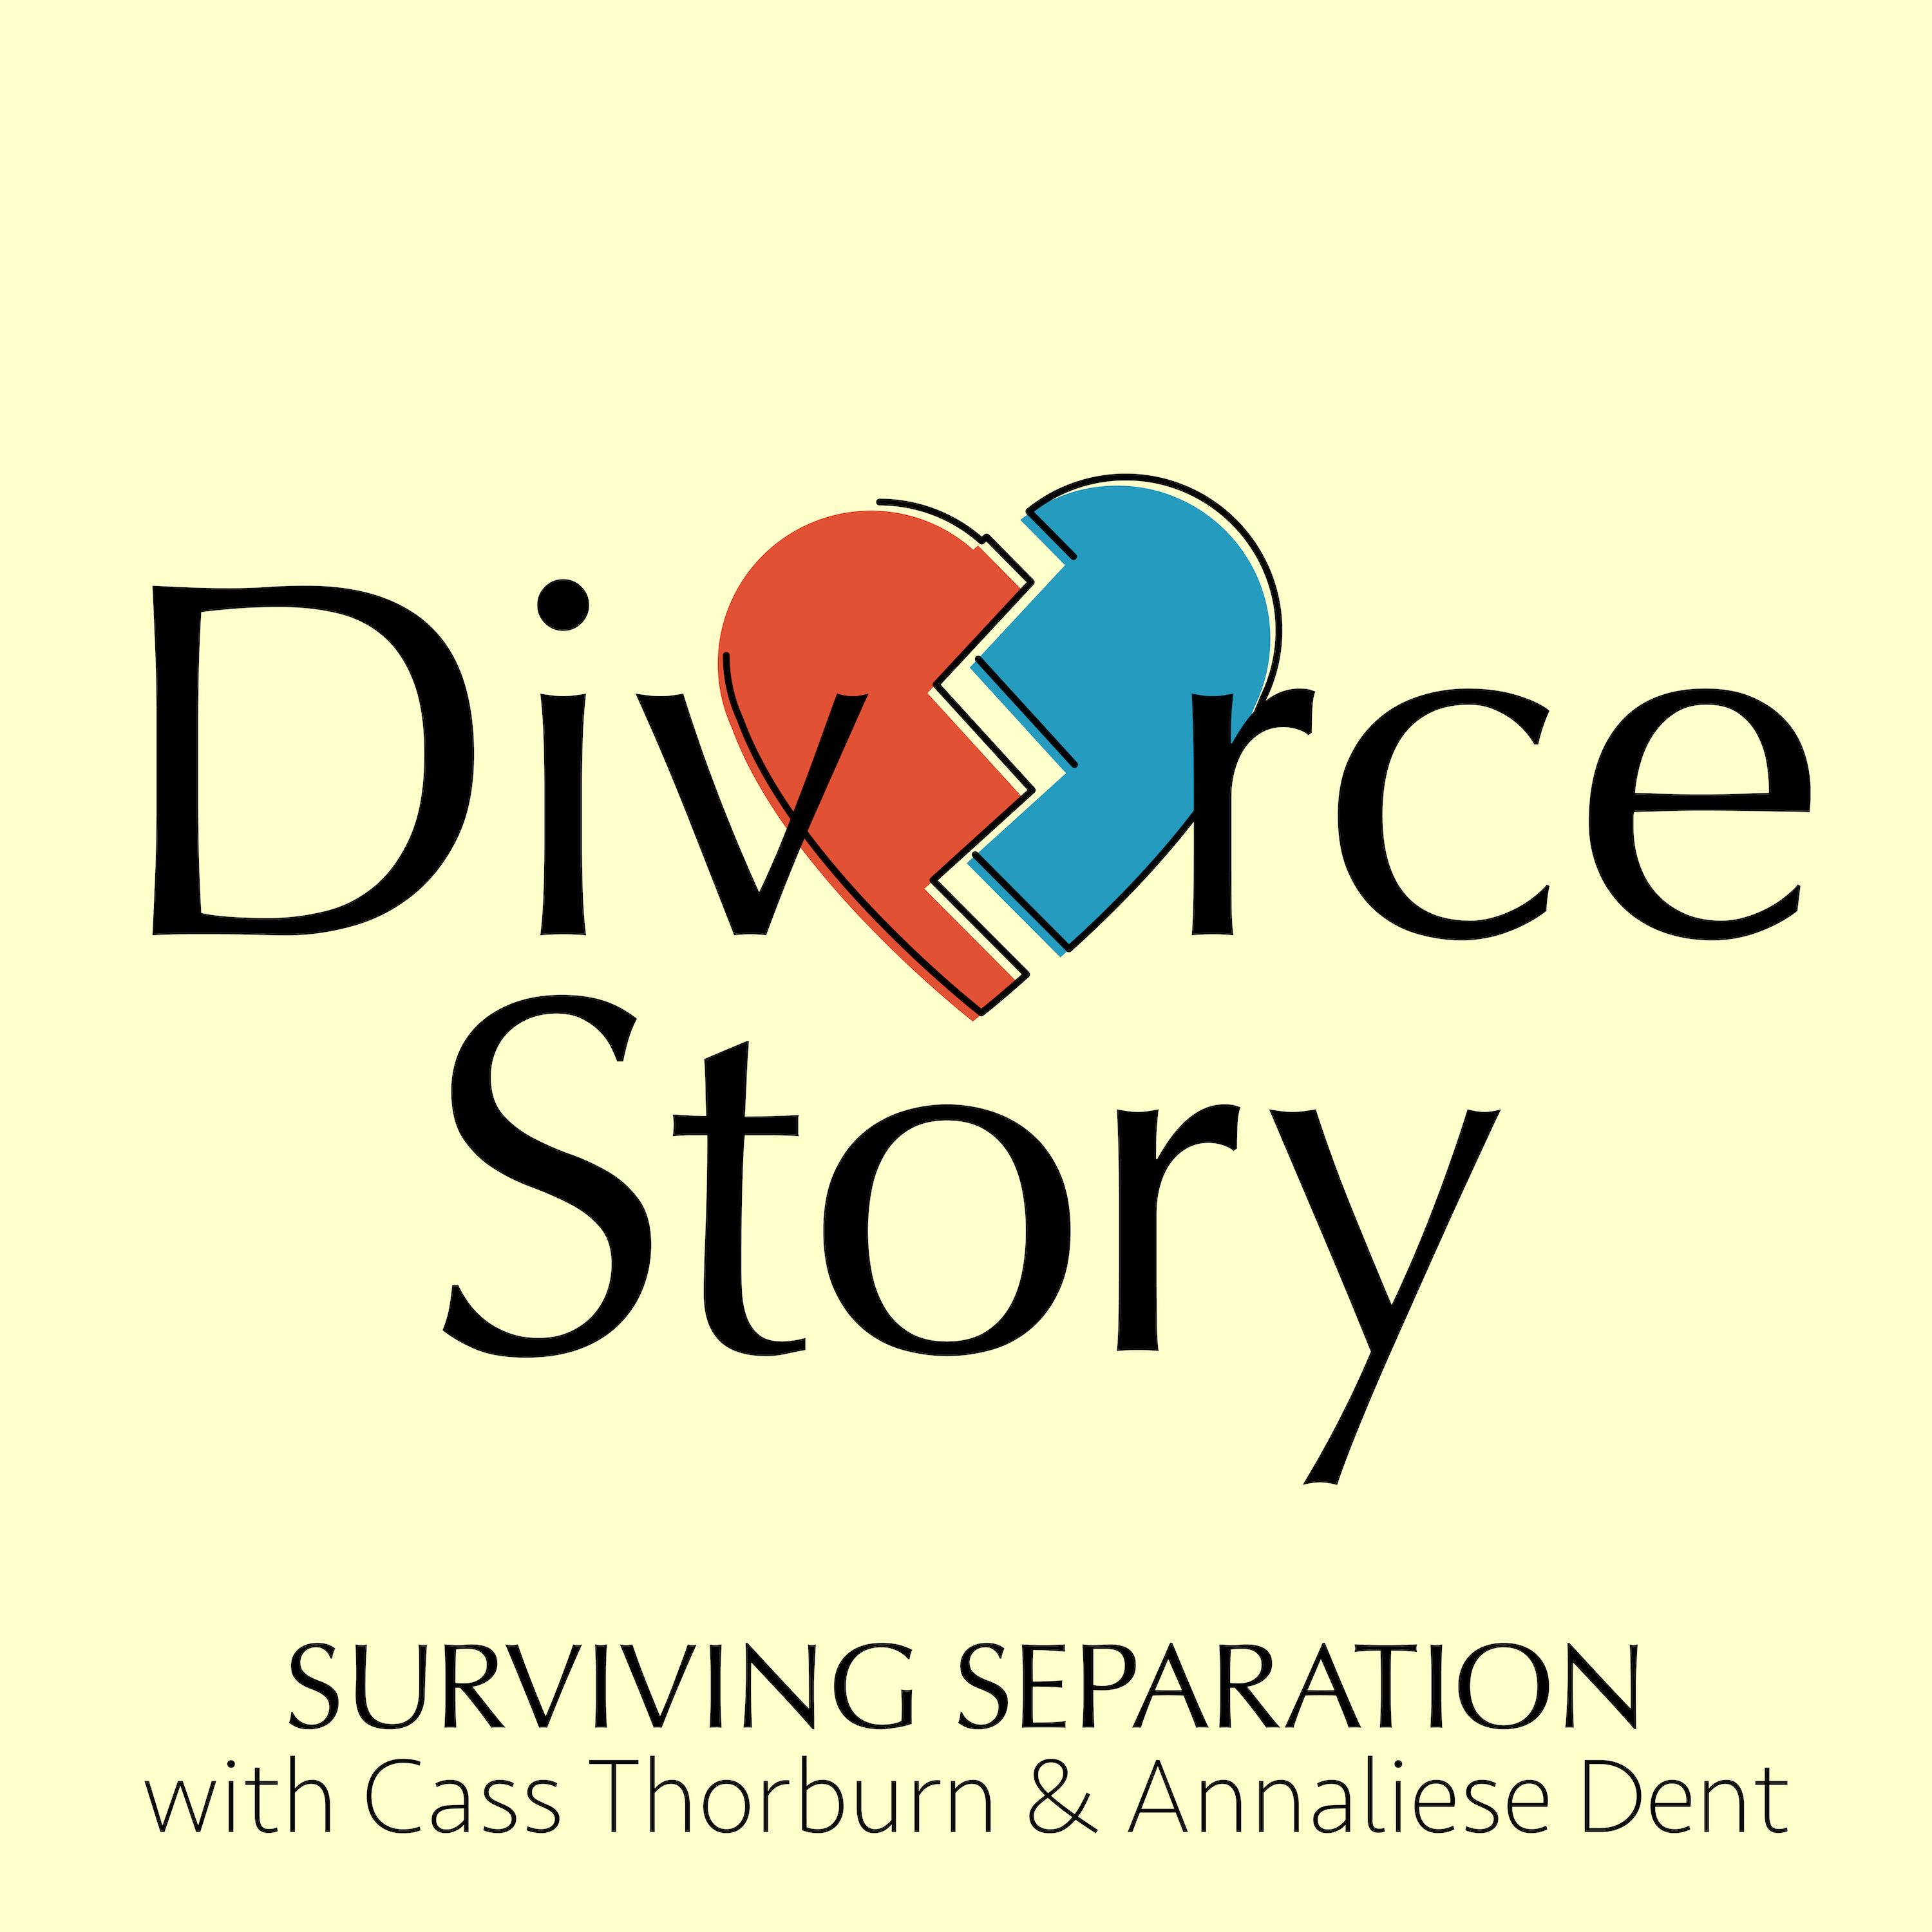 Divorce Story - How to help a friend going through separation